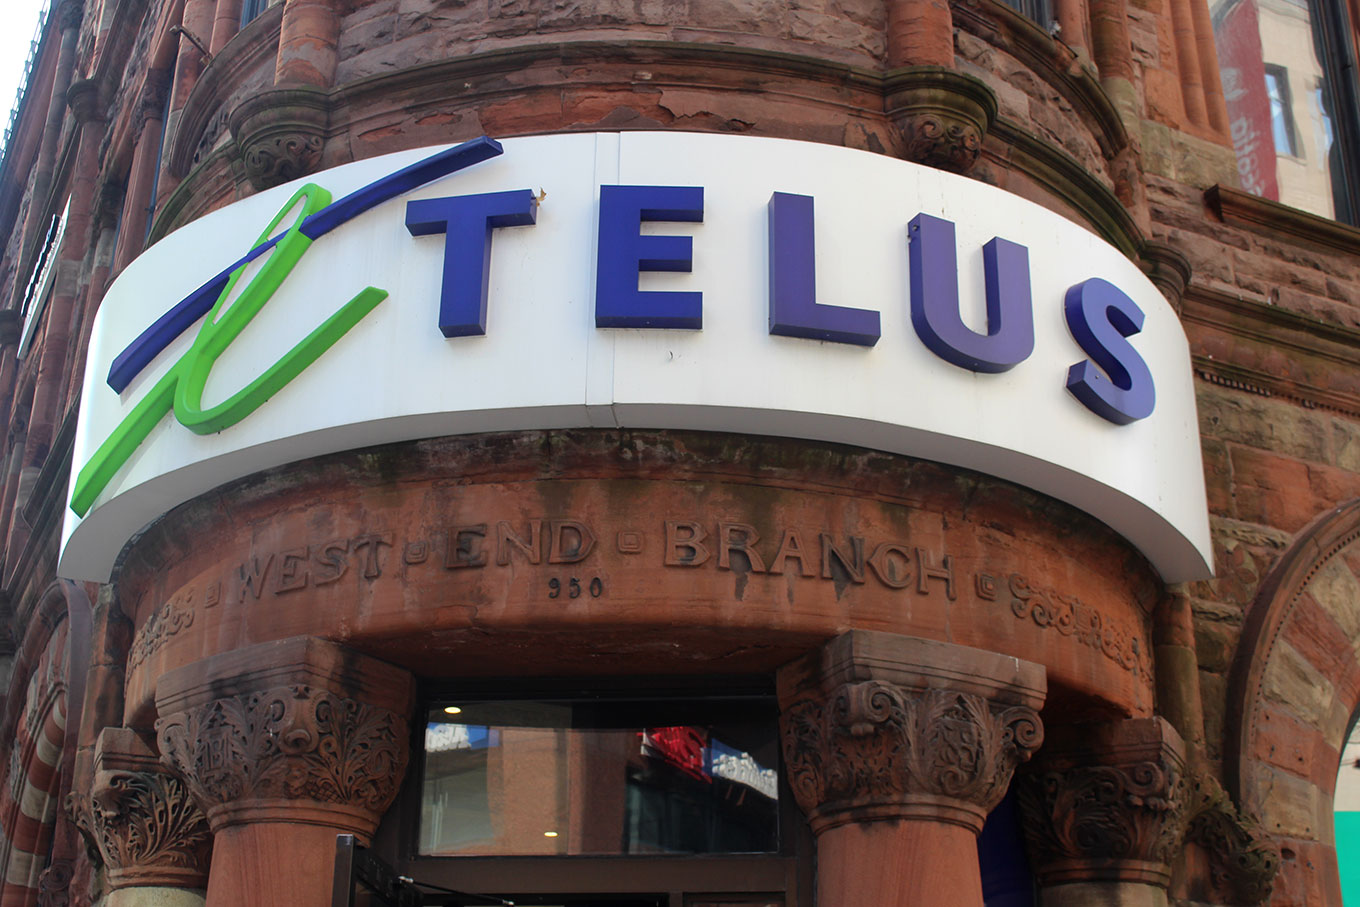 Laminated raparound Telus signage covers the original art-nouveau lettering above the door of what was formerly the Bank of Montreal.